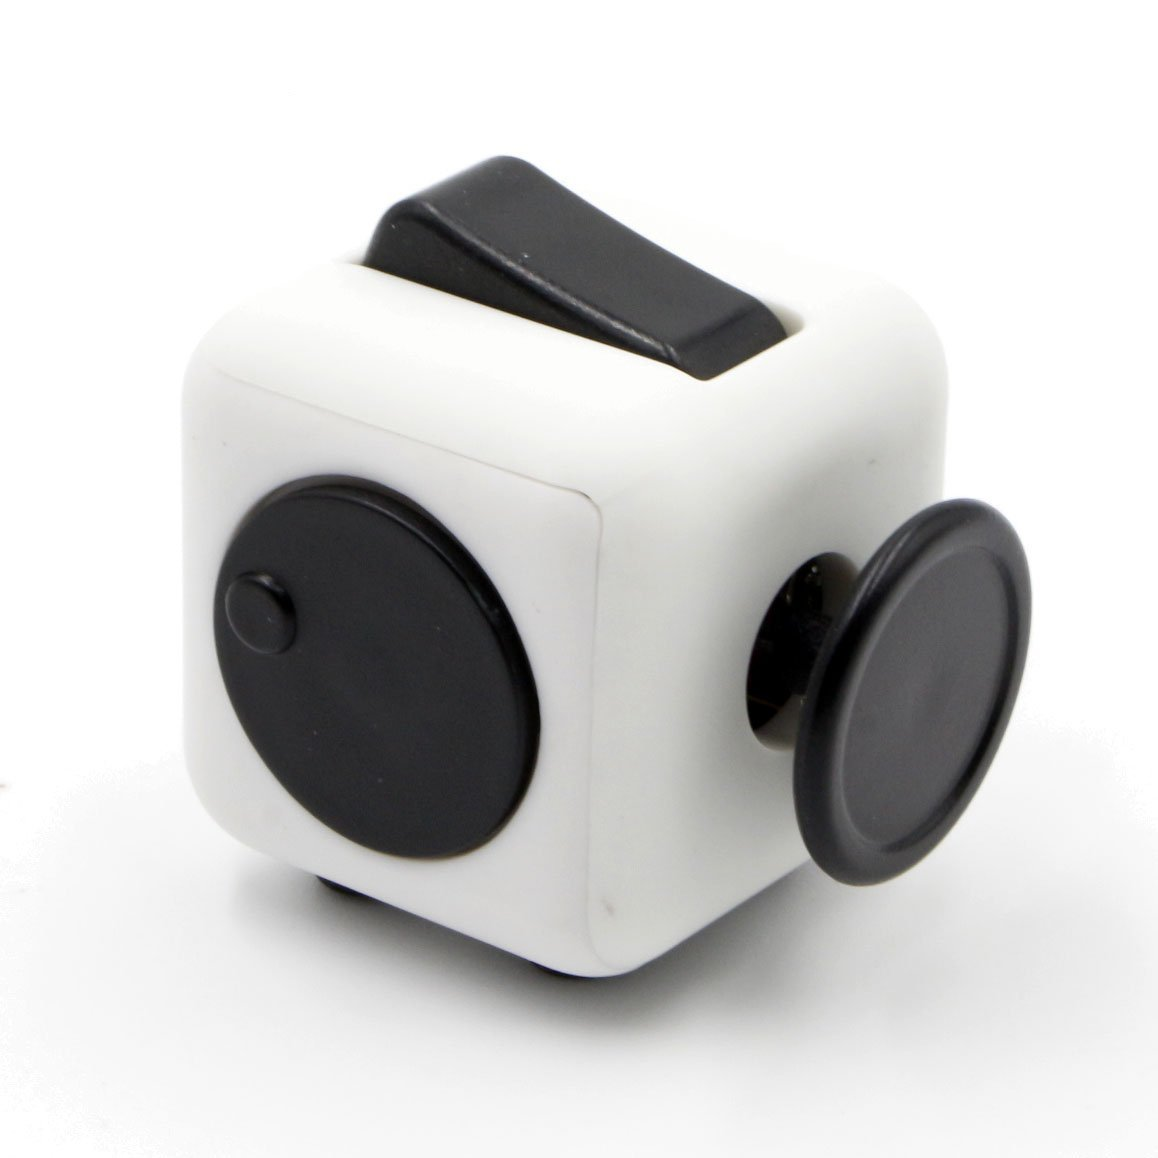 6 Cube Dice Fidget Toys White Black